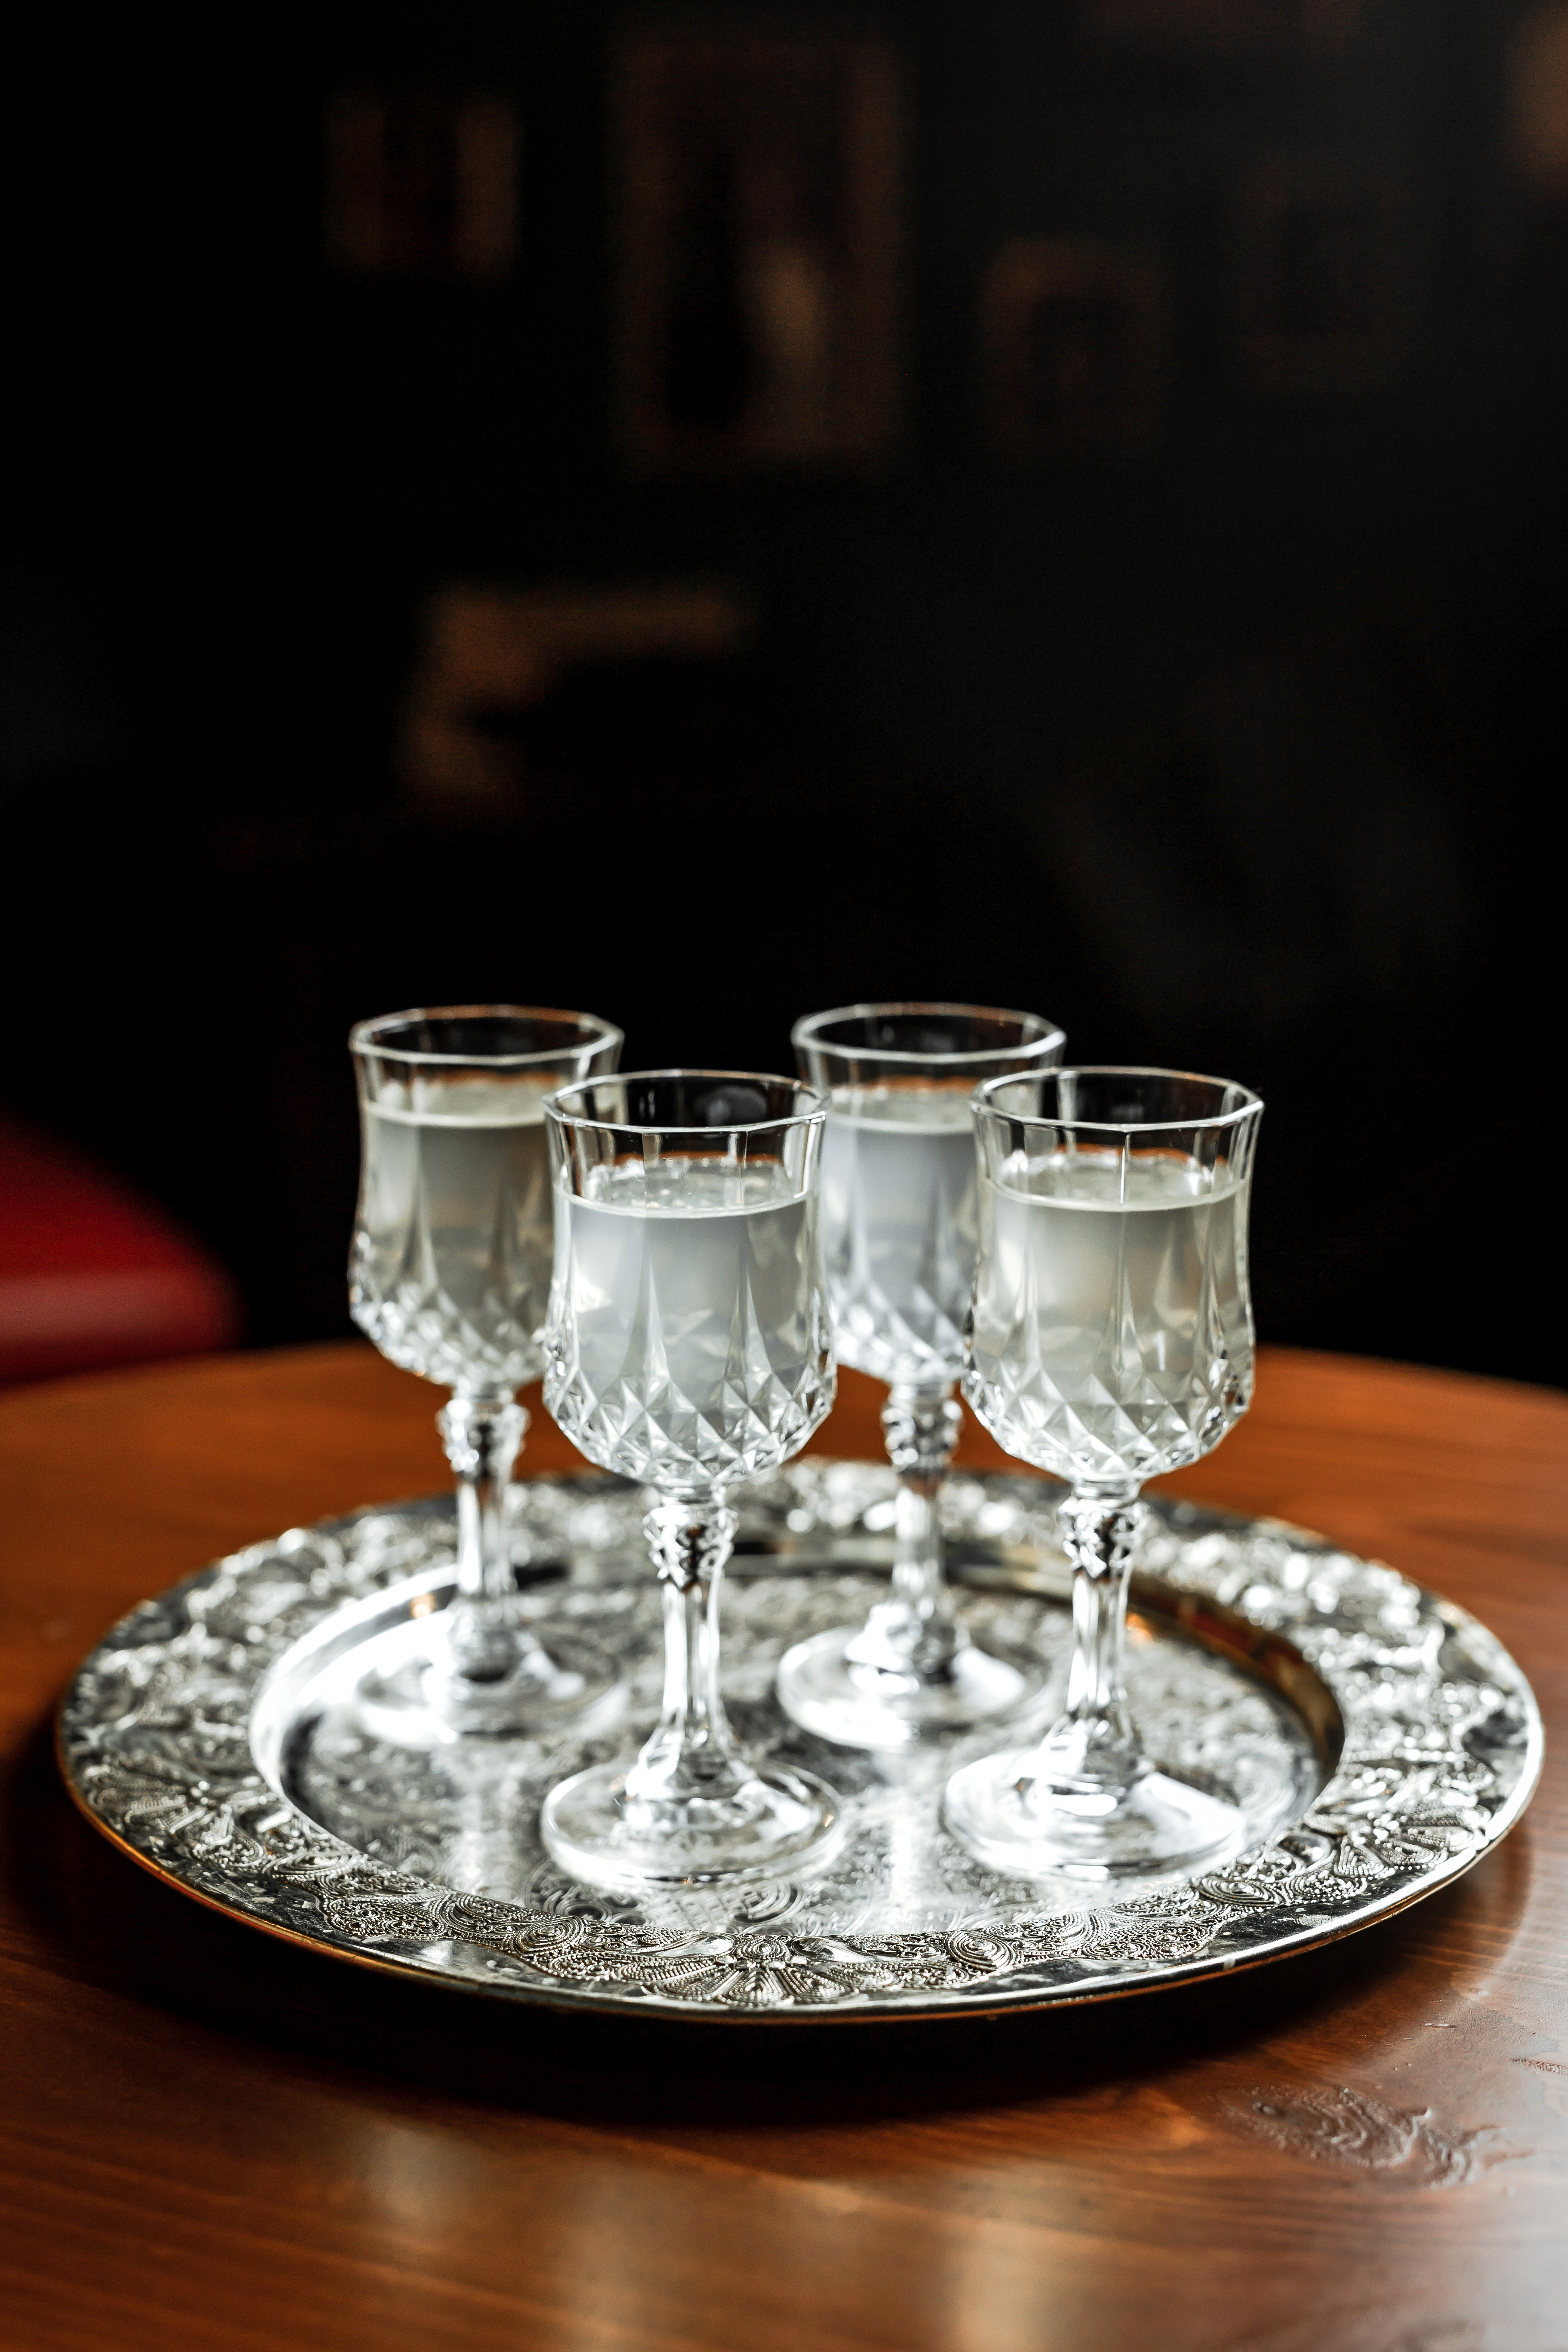 Different,Kinds,Of,White,Vermouth,In,Small,Liqueur,Glasses,On